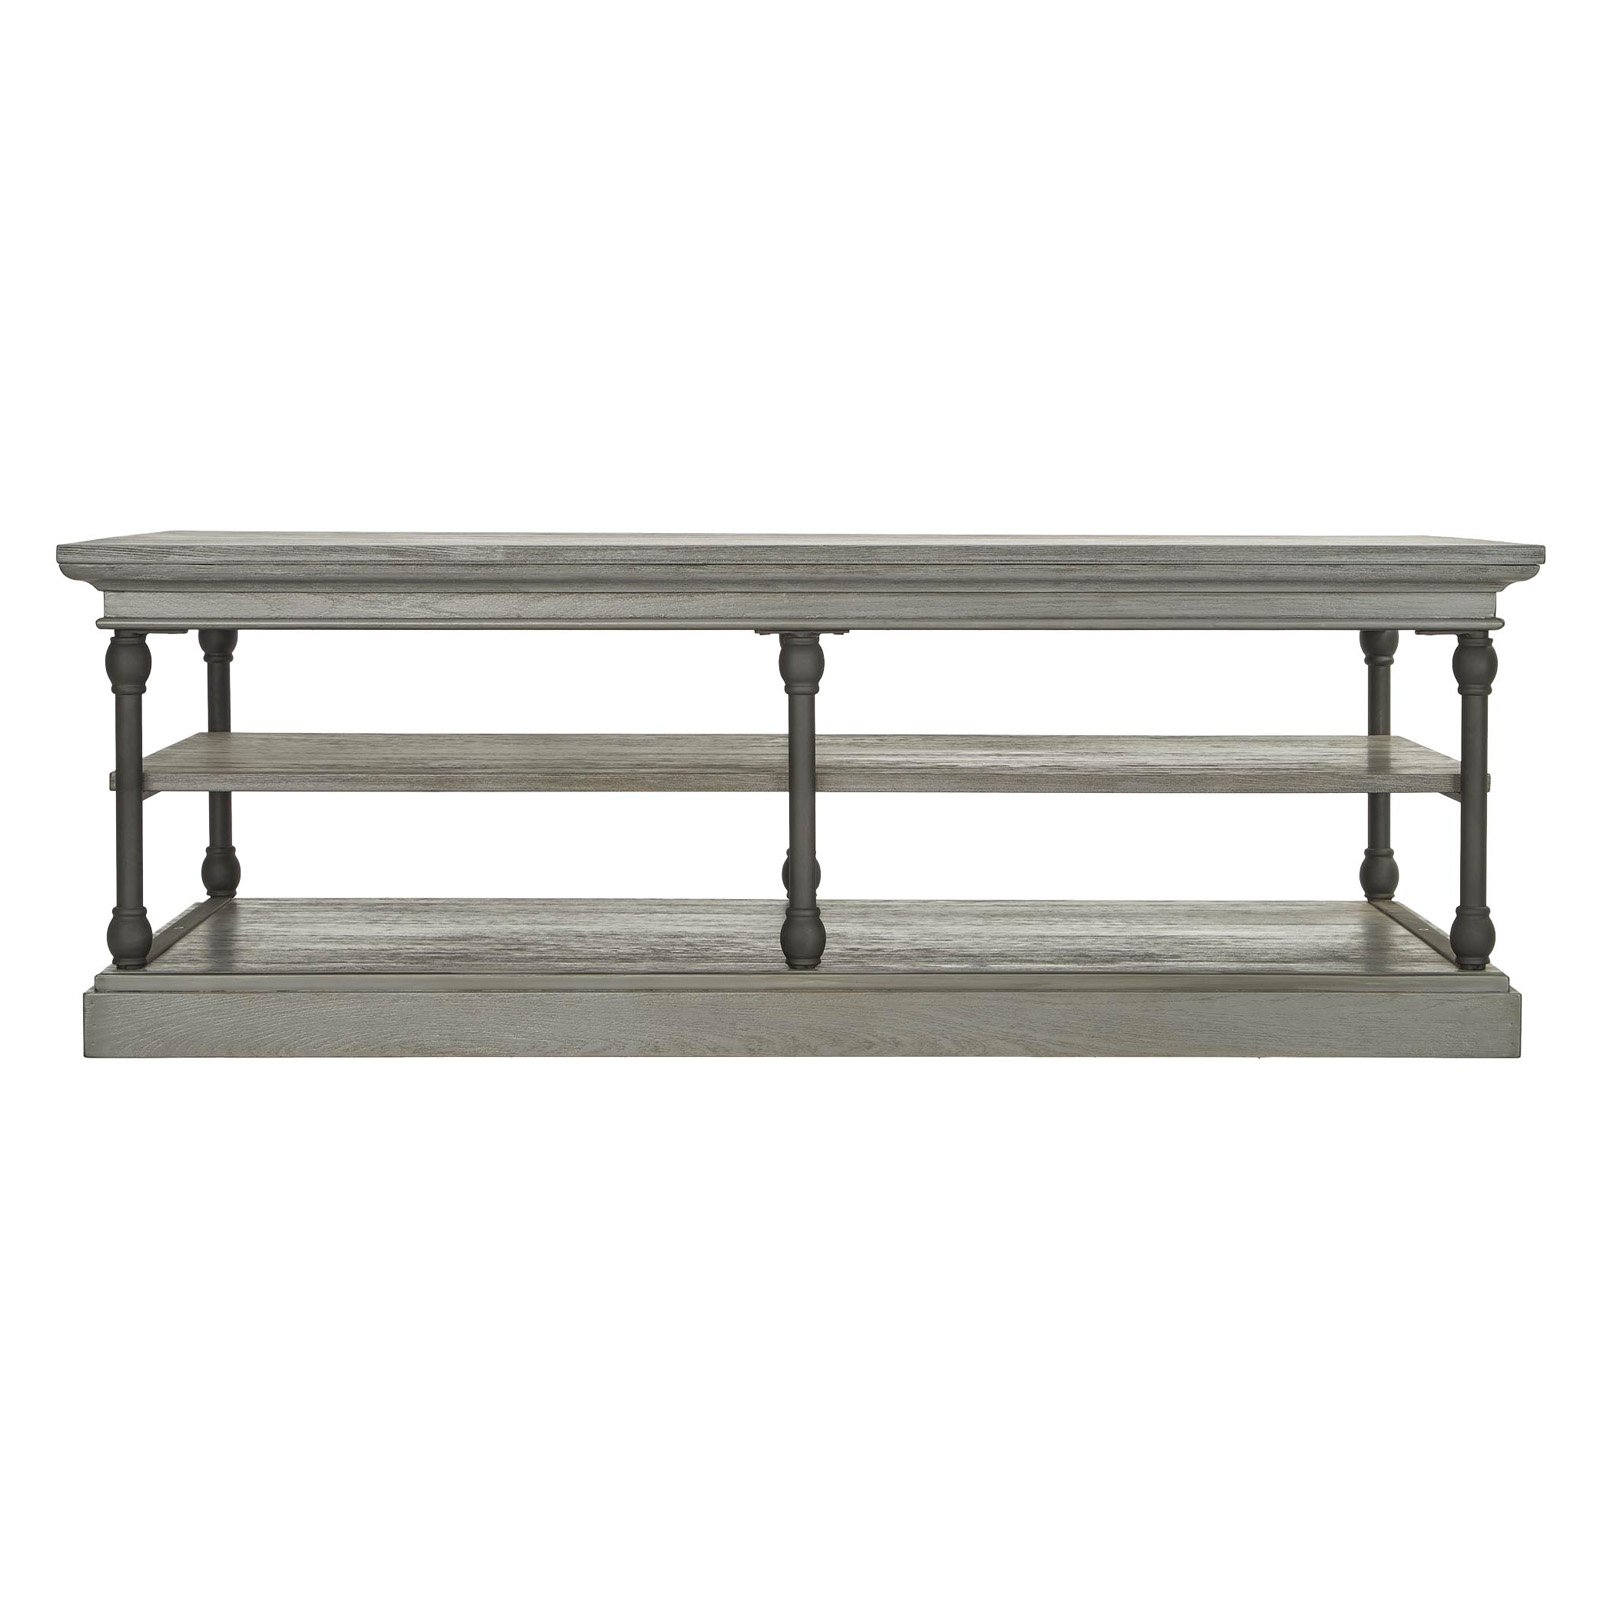 Current Jessa Rustic Country 54 Inch Coffee Tables With Weston Home Rectangle 2 Shelf Coffee Table In (View 20 of 20)